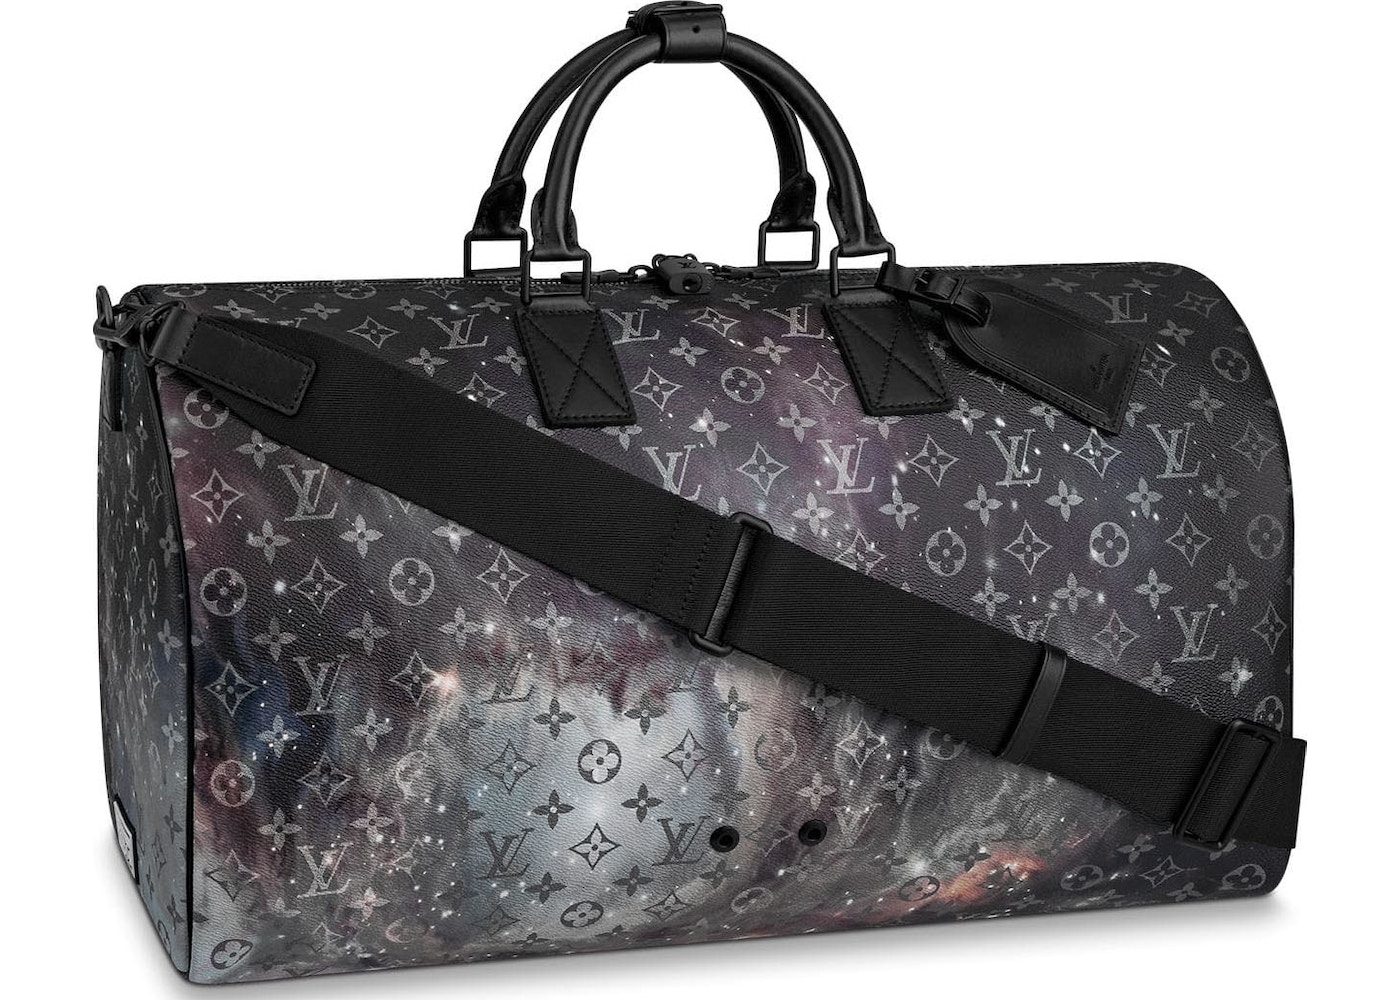 Louis Vuitton Keepall Bandouliere Monogram Galaxy 50 Black Multicolor.  Monogram Galaxy 50 Black Multicolor 5e28cb9c329f8